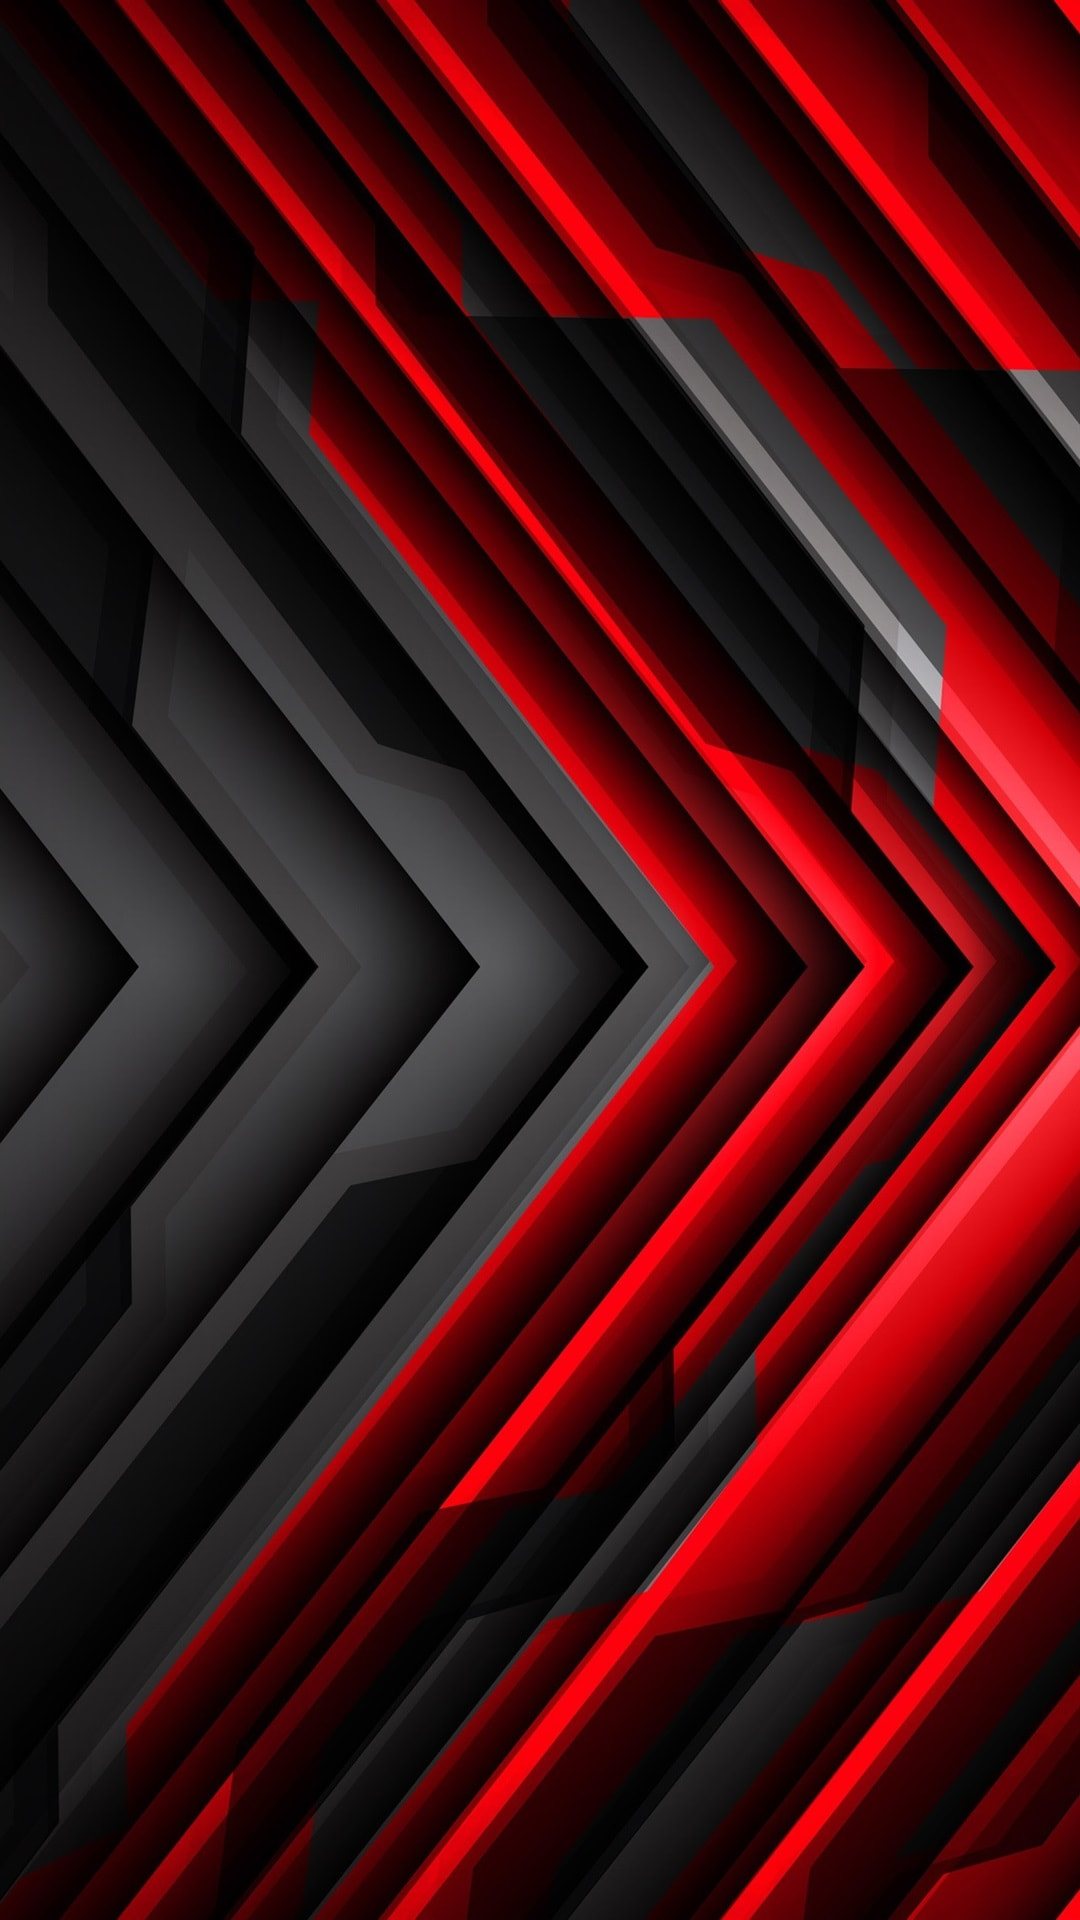 Red Black Iphone Wallpaper